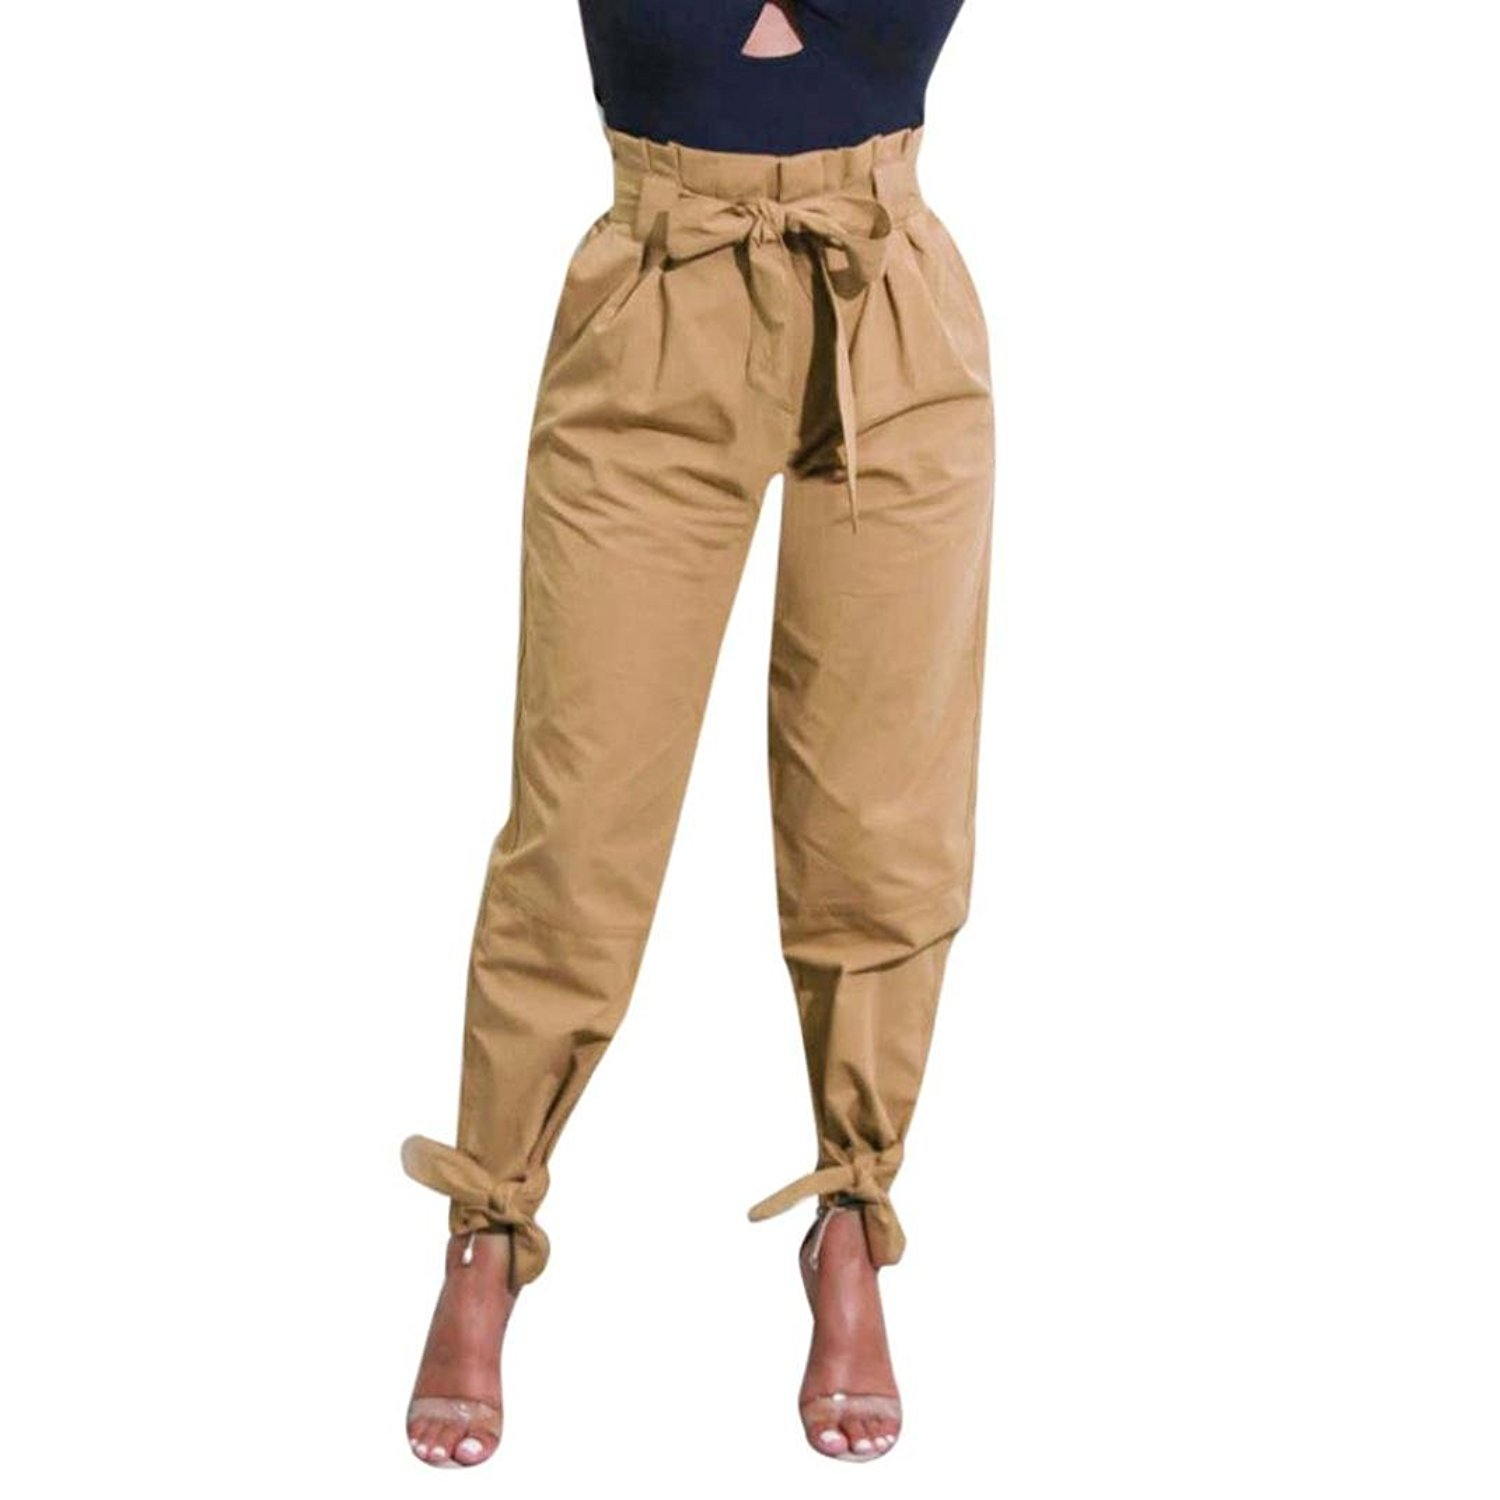 48e39427ee Get Quotations · RAISINGTOP Women Ladies Belted High Waist Trousers Long  Ladies Party Baggy Casual Lounge Pants Ankle Length